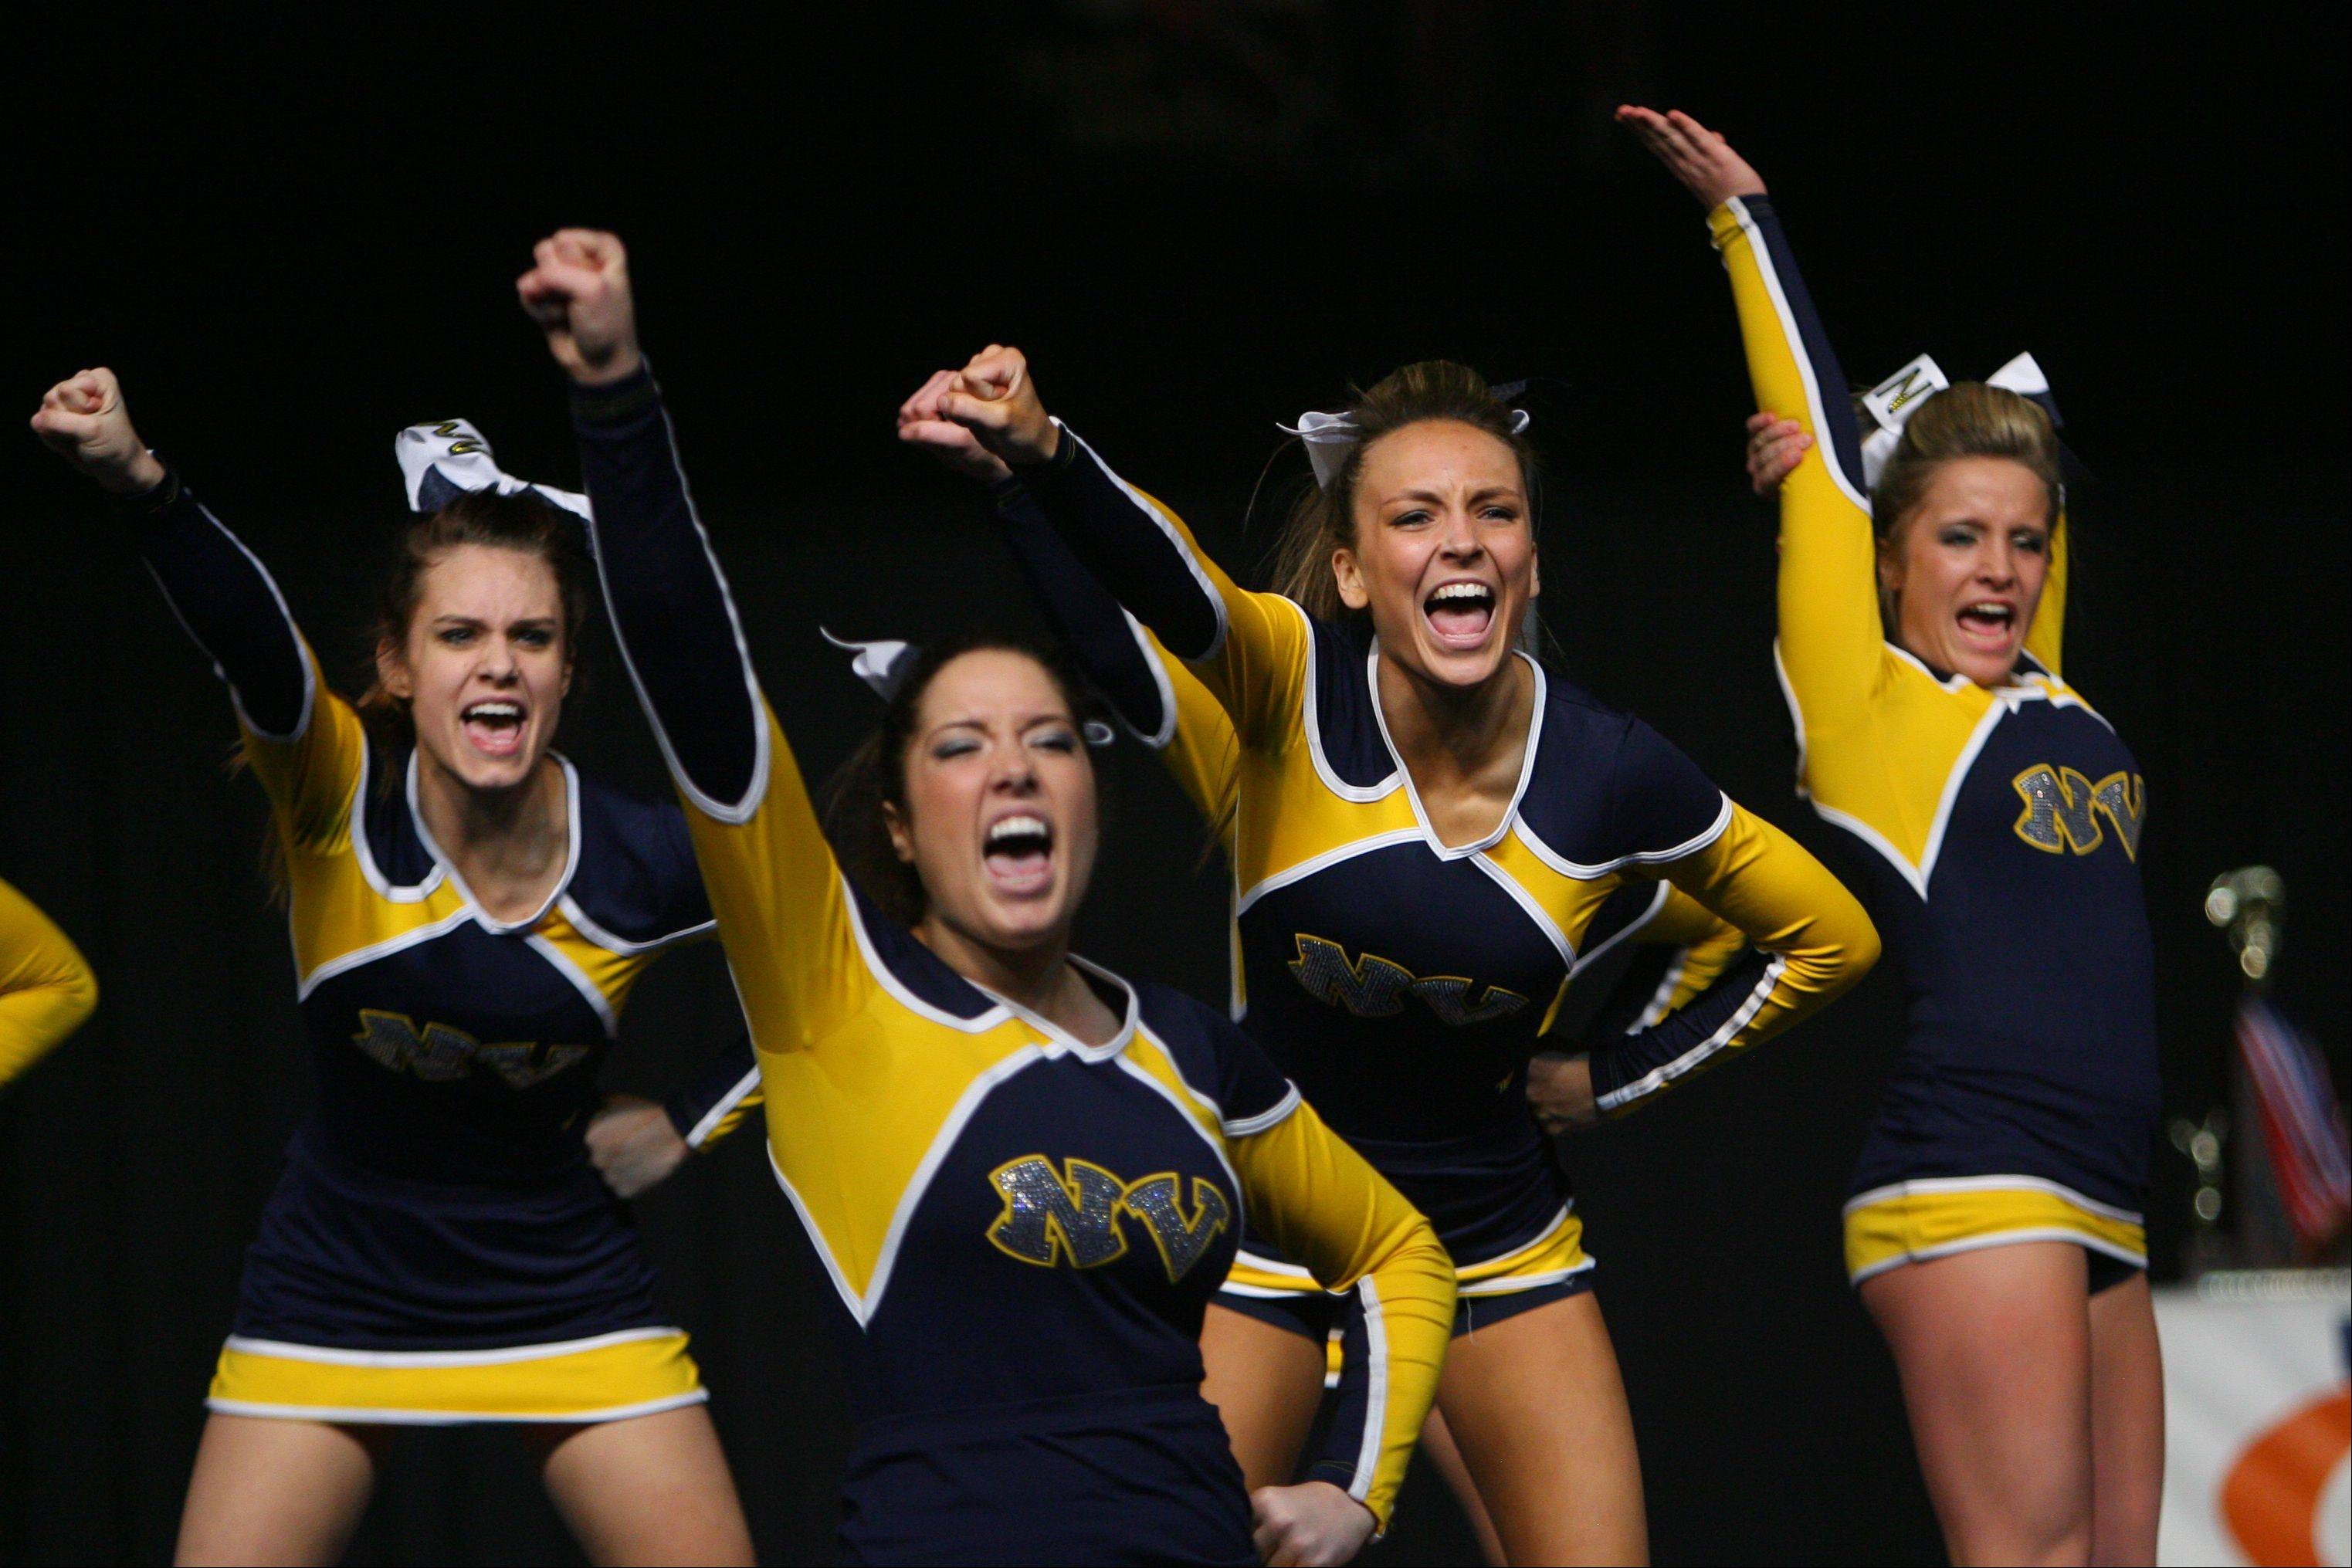 Neuqua Valley competes in large school prelims on Friday at the U.S. Cellular Coliseum in Bloomington. Neuqua advanced to Saturday's finals.